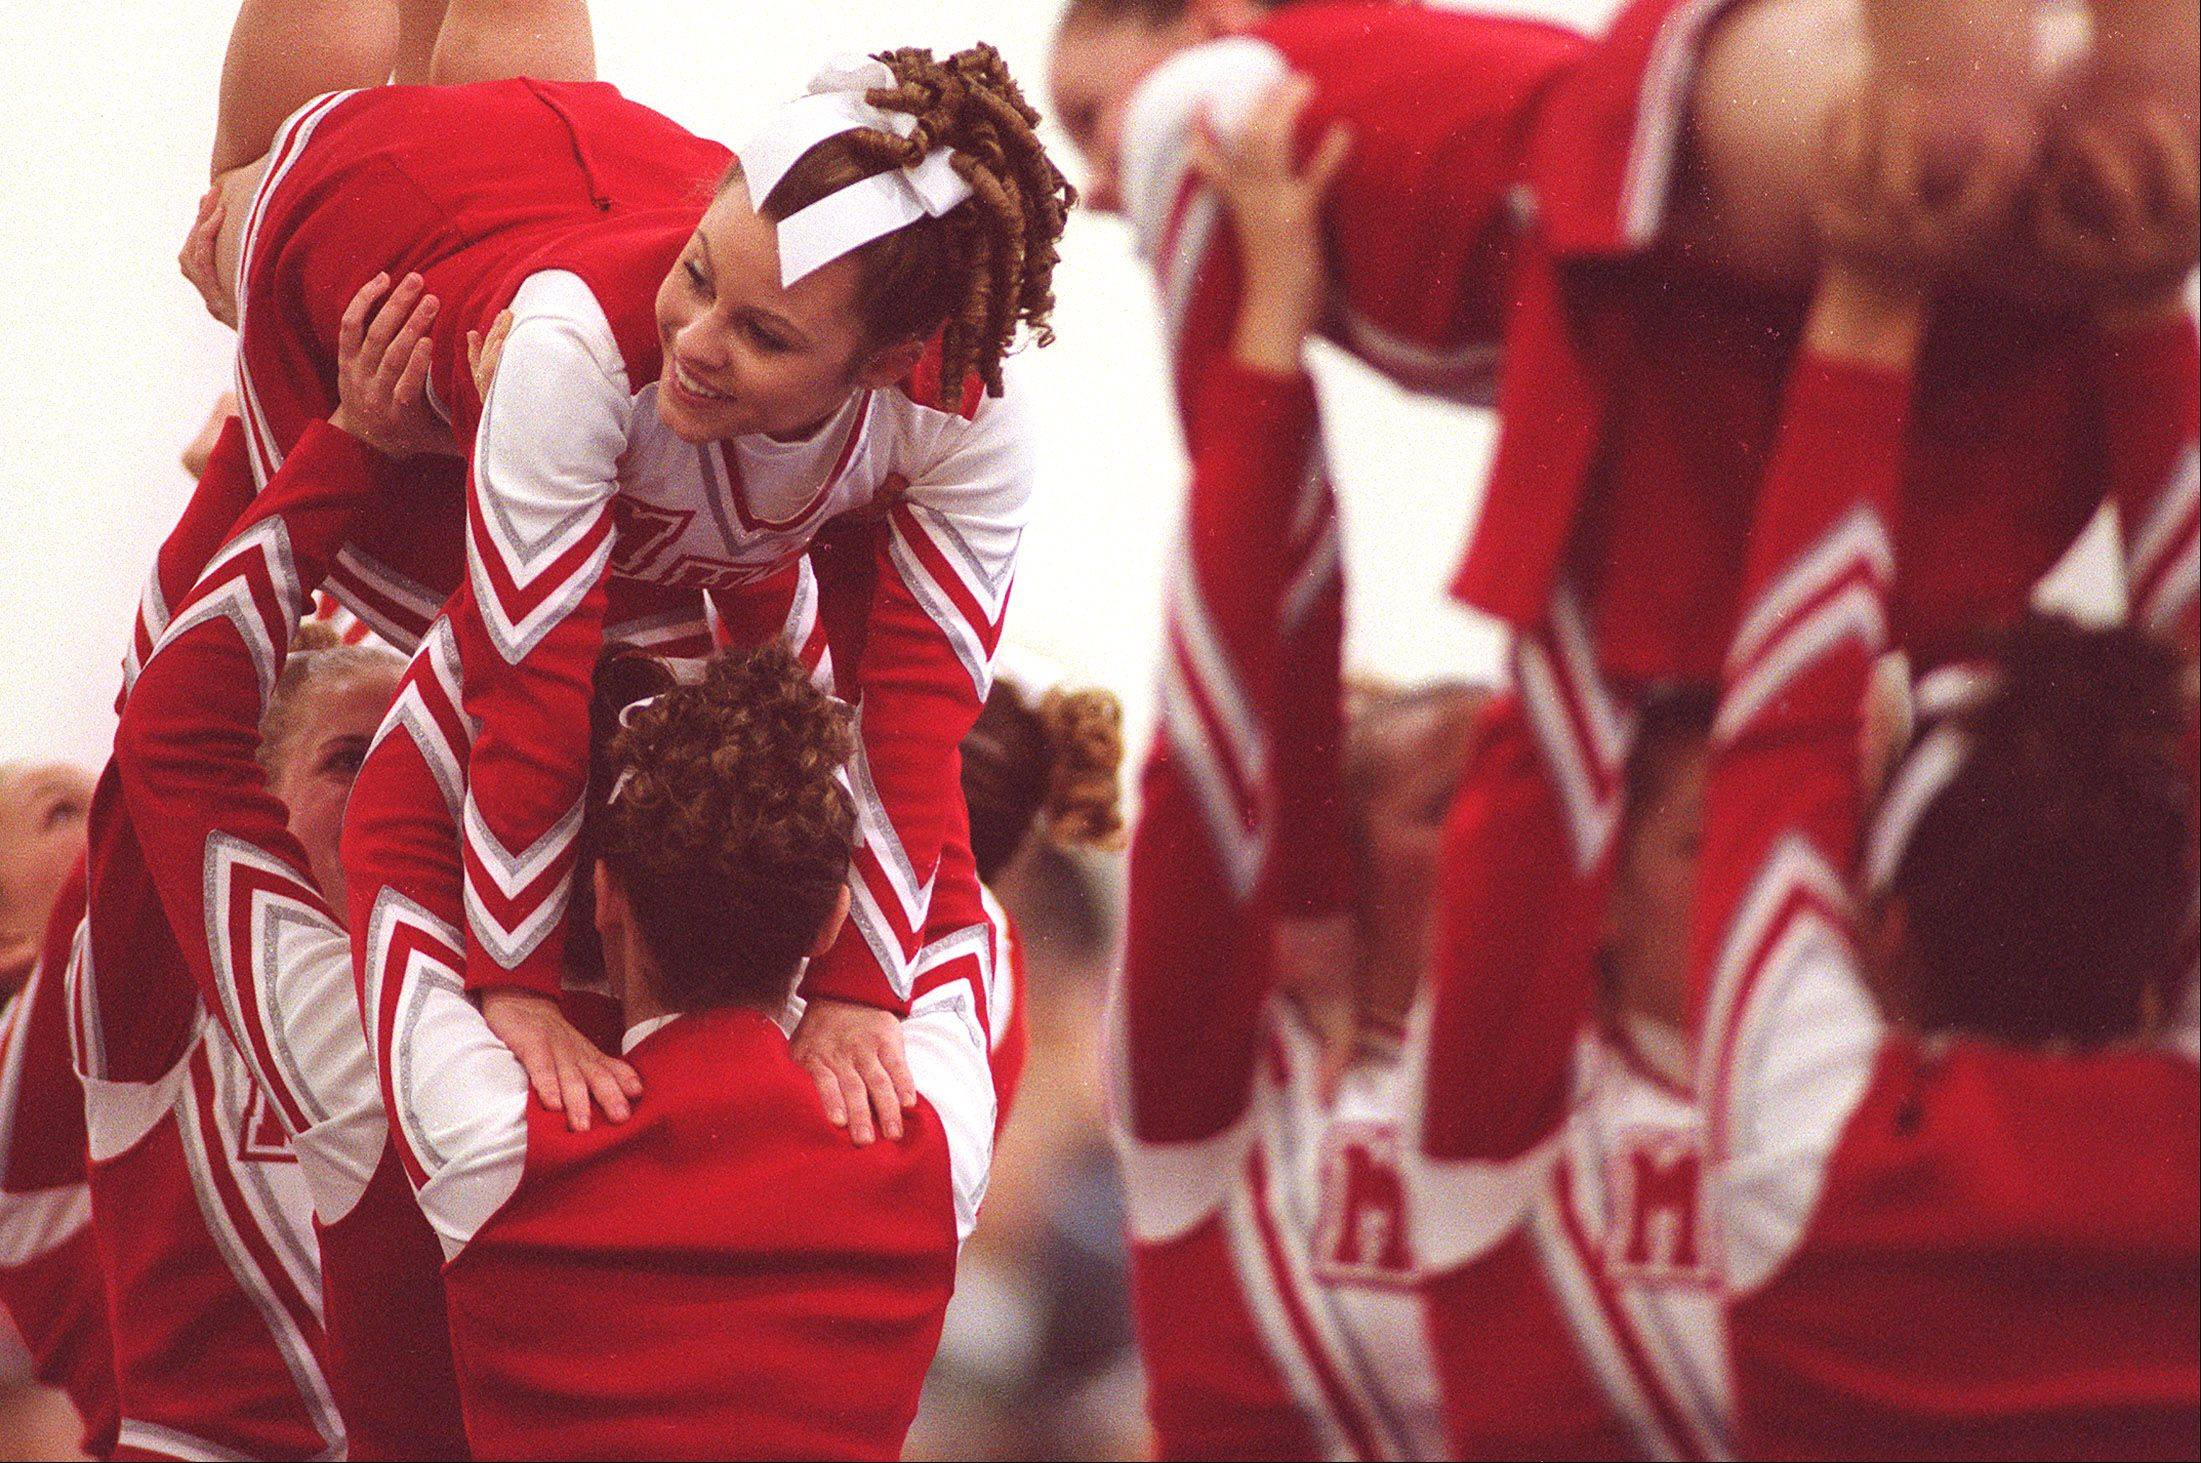 In a new policy statement released online Monday in the journal Pediatrics, the American Academy of Pediatrics says school sports associations should designate cheerleading as a sport, and make it subject to safety rules and better supervision.